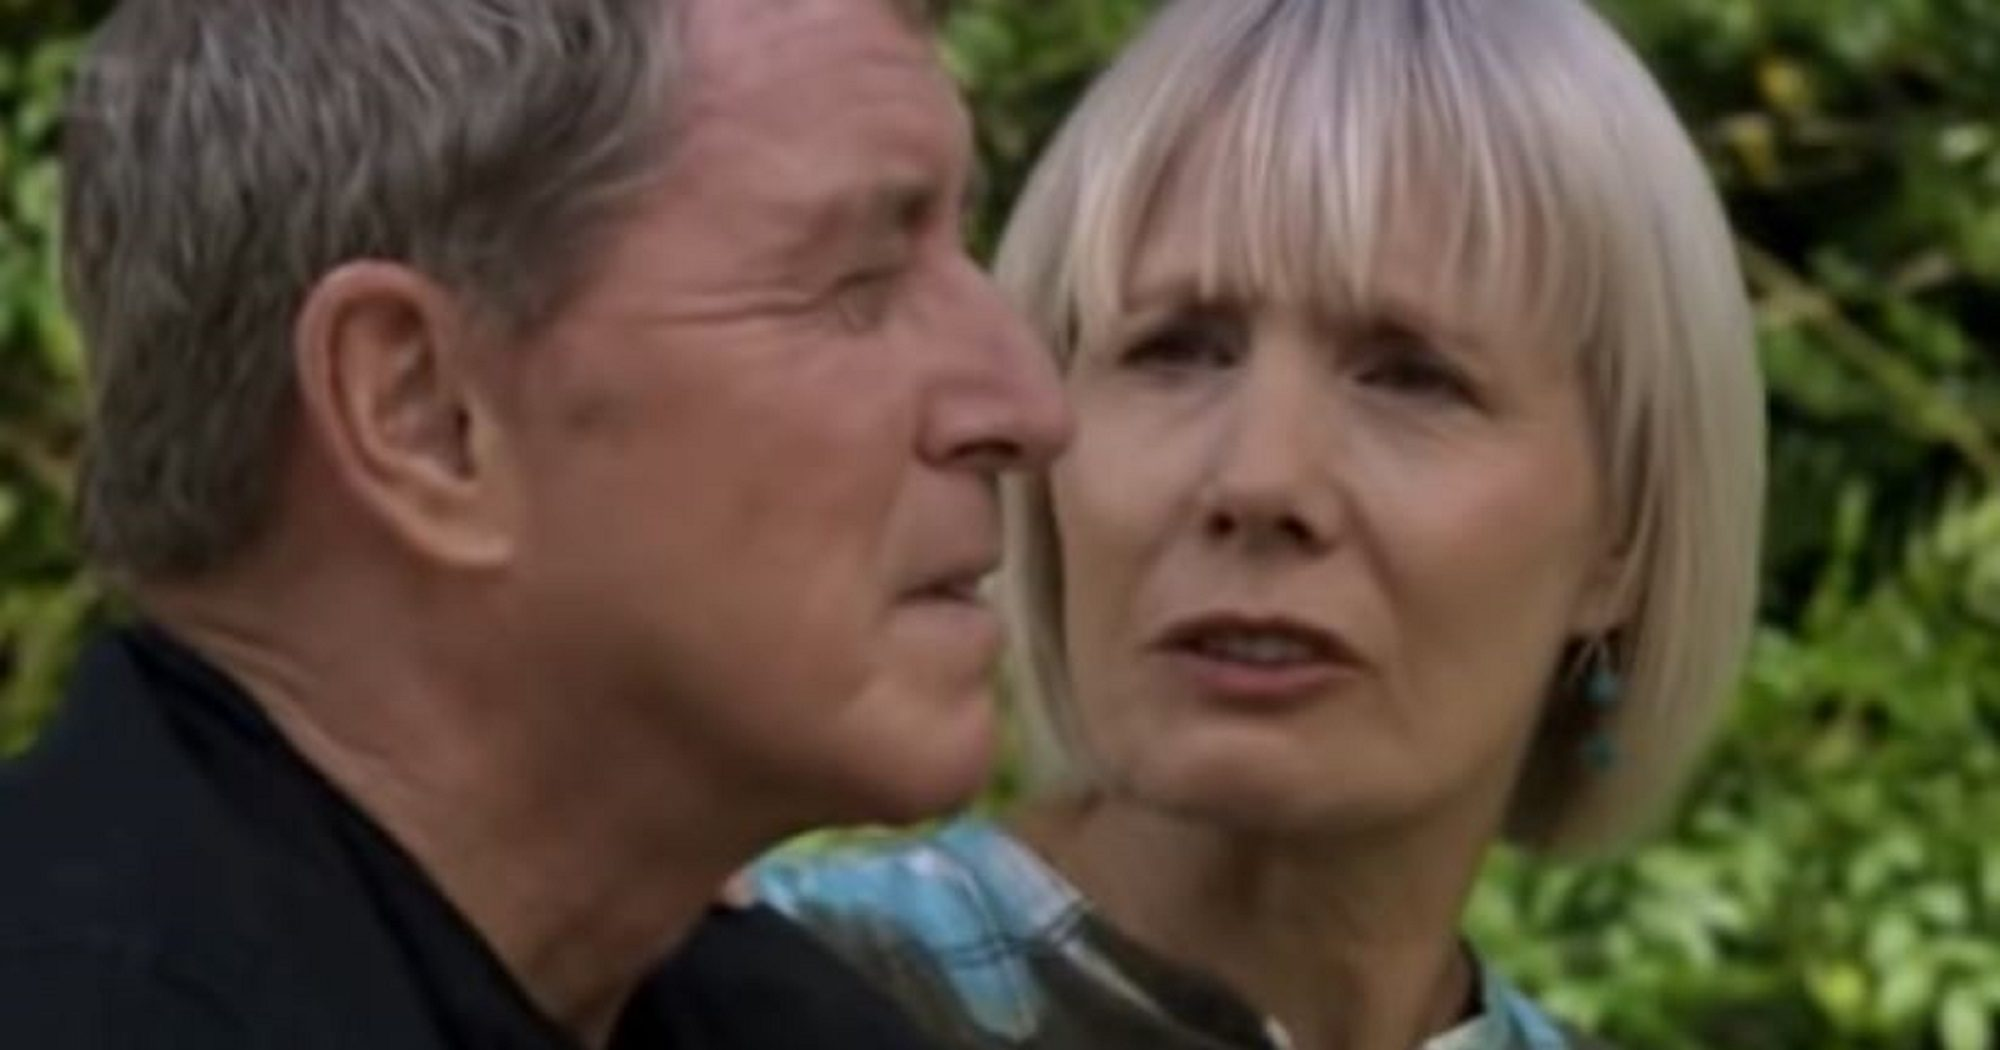 Midsomer Murders fans have a shocking theory about Tom Barnaby's wife Joyce after feasting on ITV3 repeats